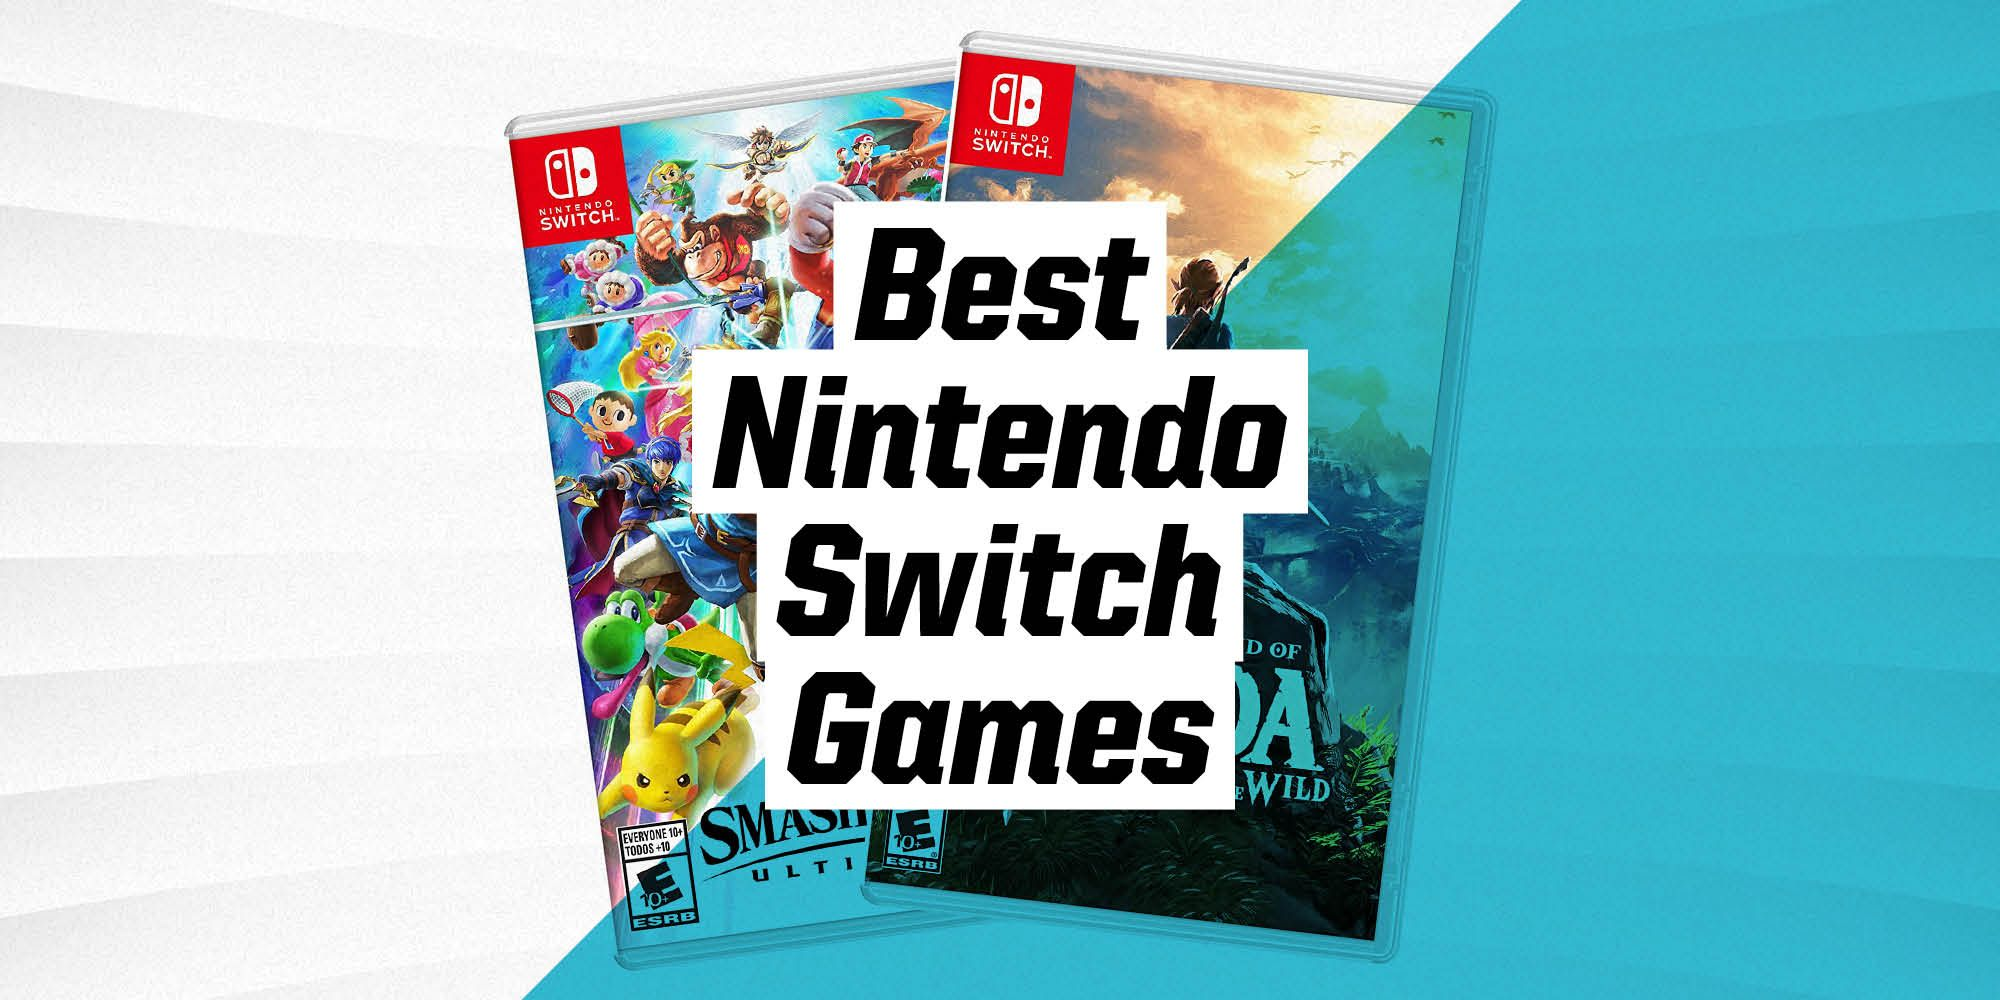 10 Nintendo Switch Games You Should Play Right Now